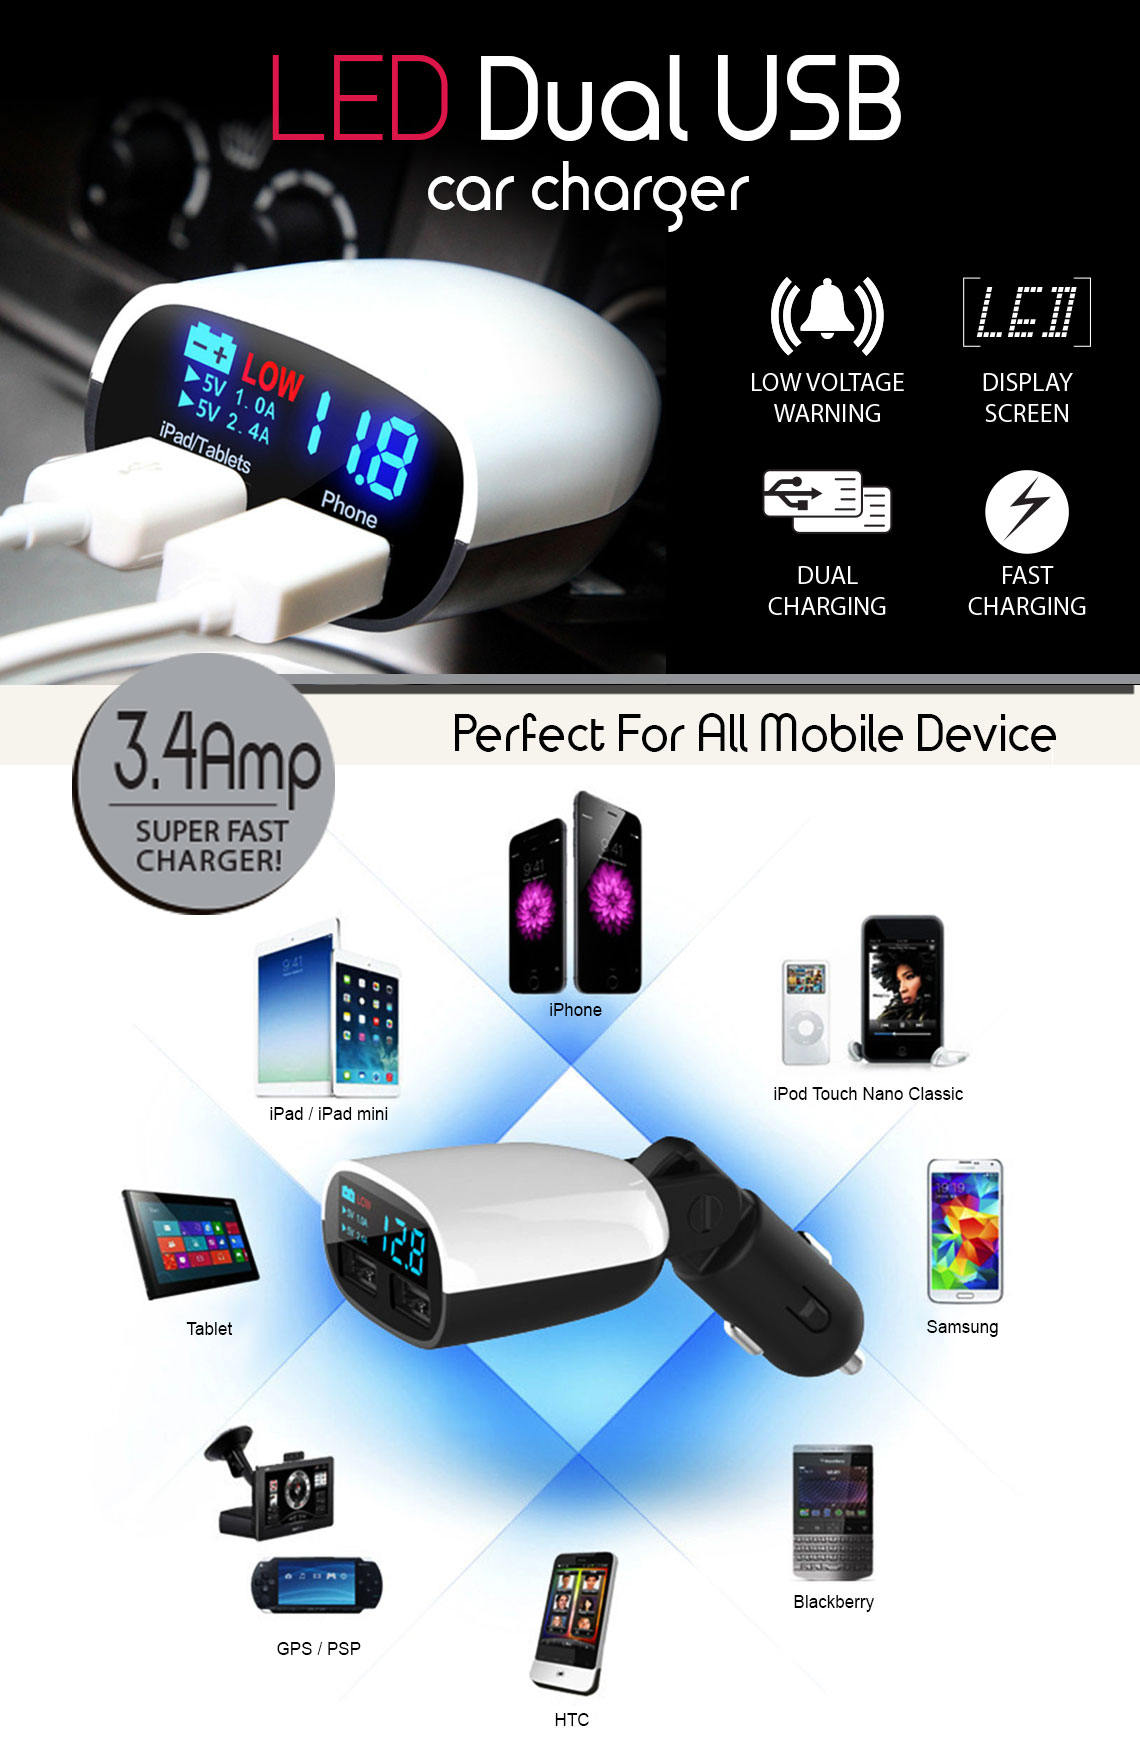 Universal Super Fast Charging 34a Led Dual Usb Car Charger Psp There Are No Reviews For This Product